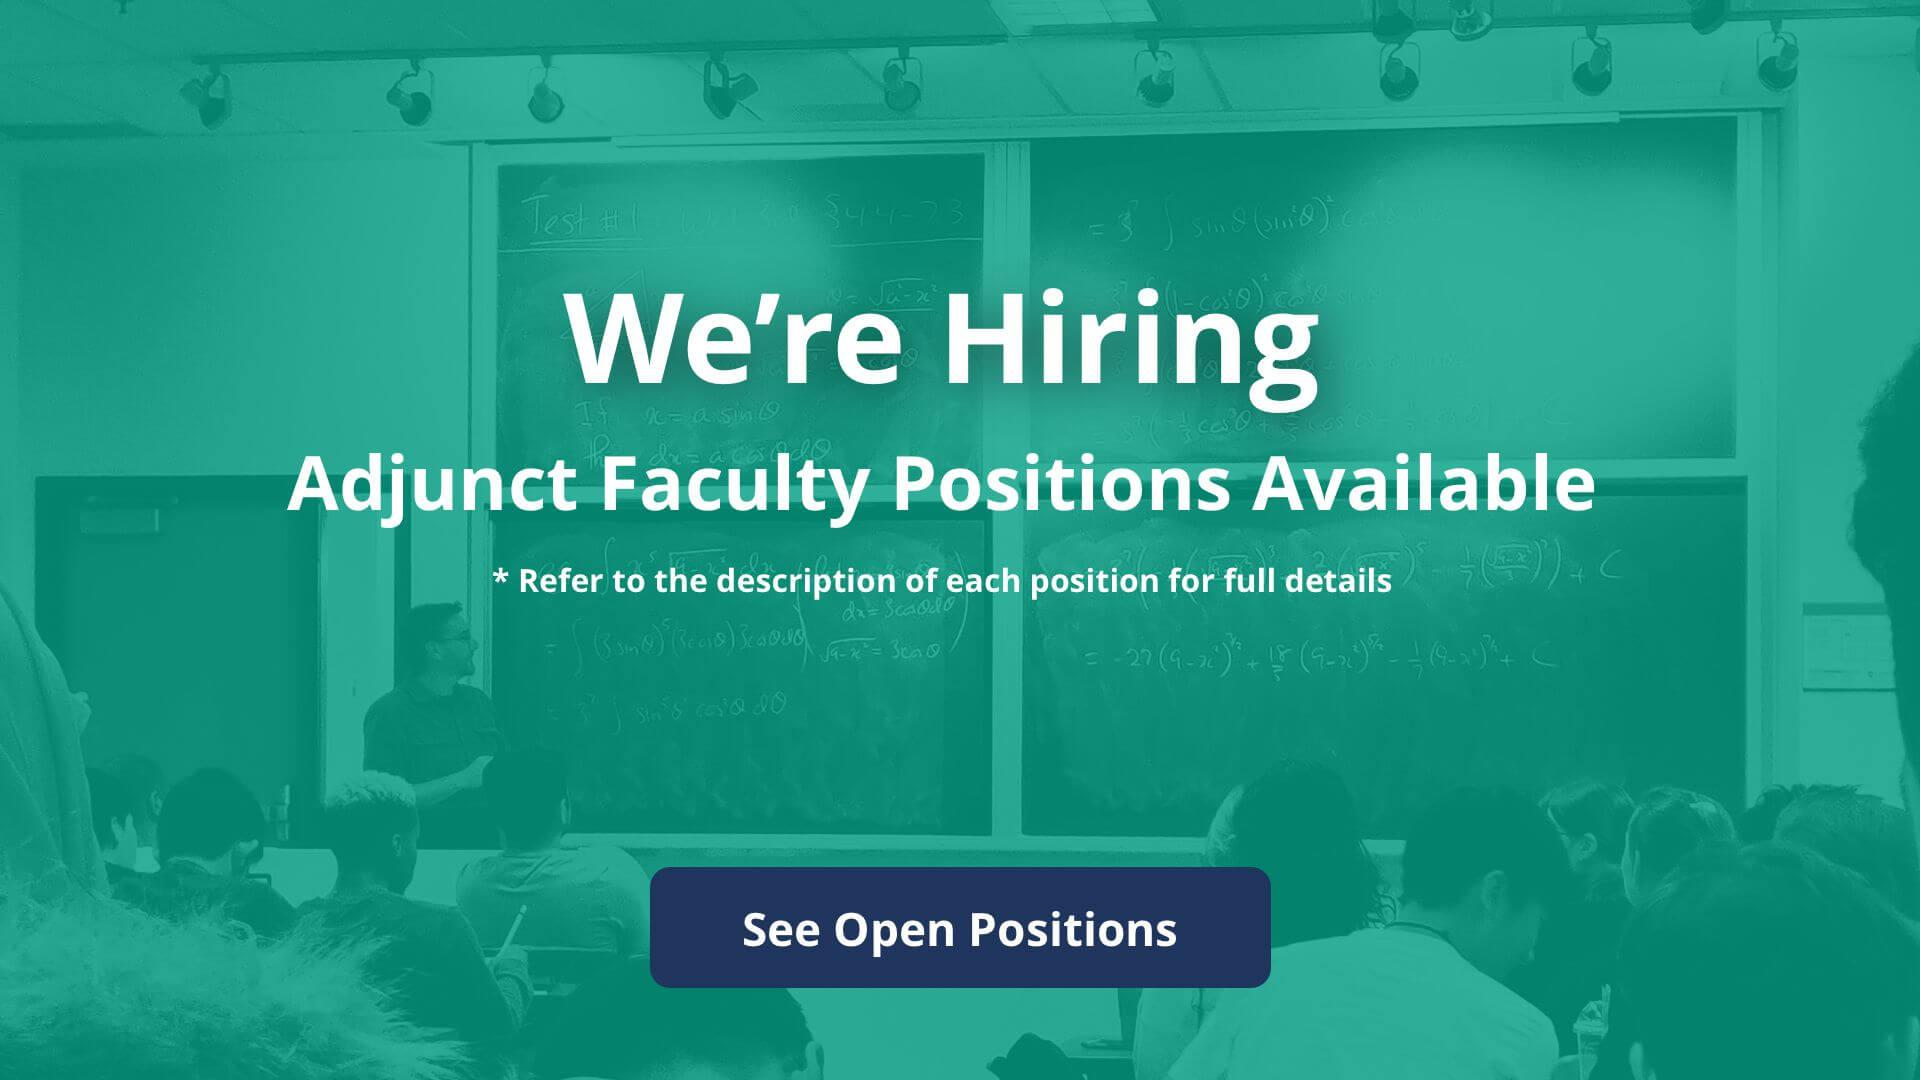 Adjunct Positions at JCC. JCC is hiring adjunct faculty positions.